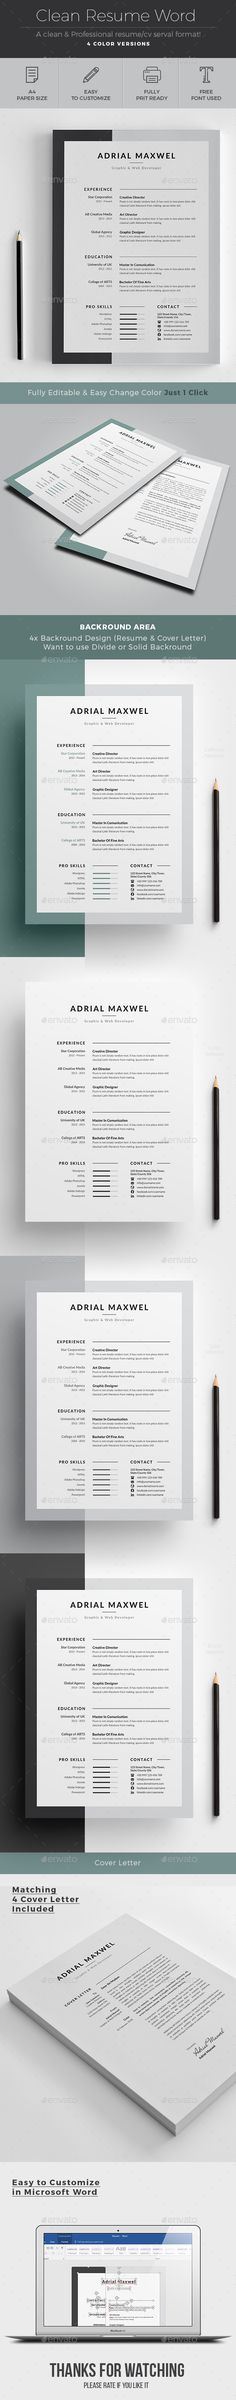 Resume/CV Word Template is a Minimal, bold, Dynamic and Professional Resume Template - with FREE cover letter - Easy to edit and customize | Download: https://graphicriver.net/item/resume/19040727?ref=jpixel55